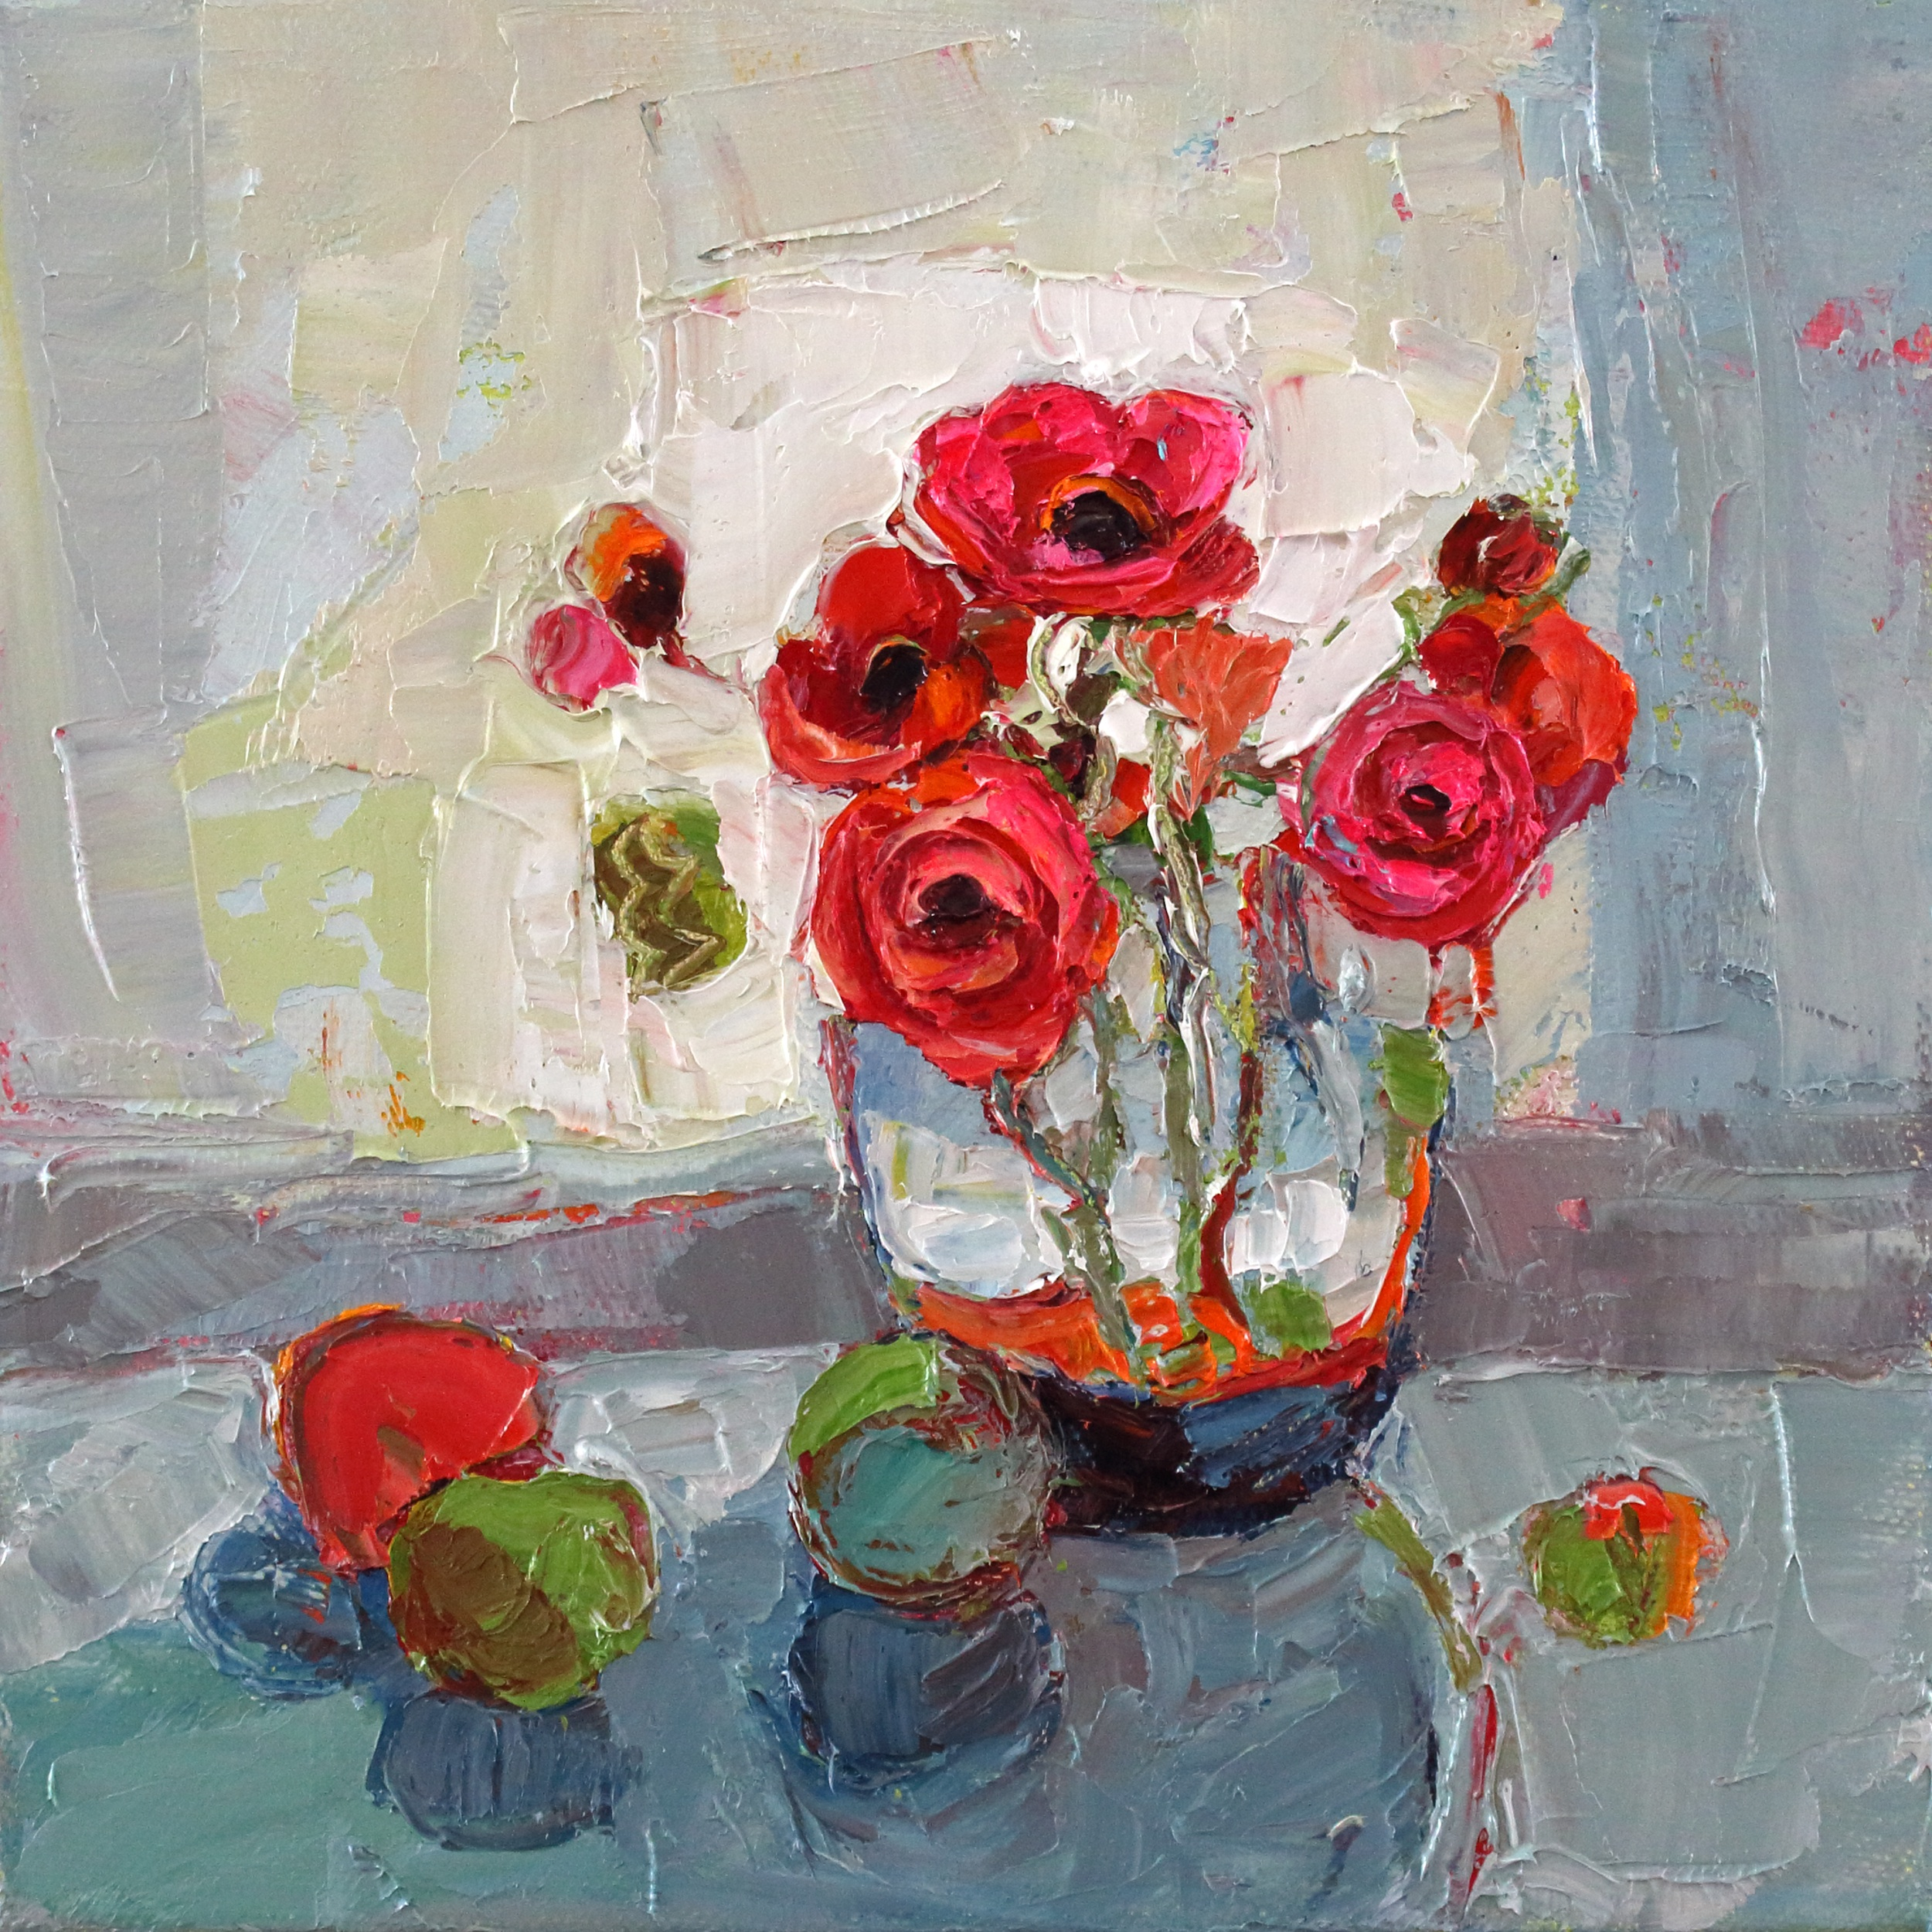 Title: Rosy Tumbler Size: 8 x 8 inches Medium: Oil on Canvas Price: £900